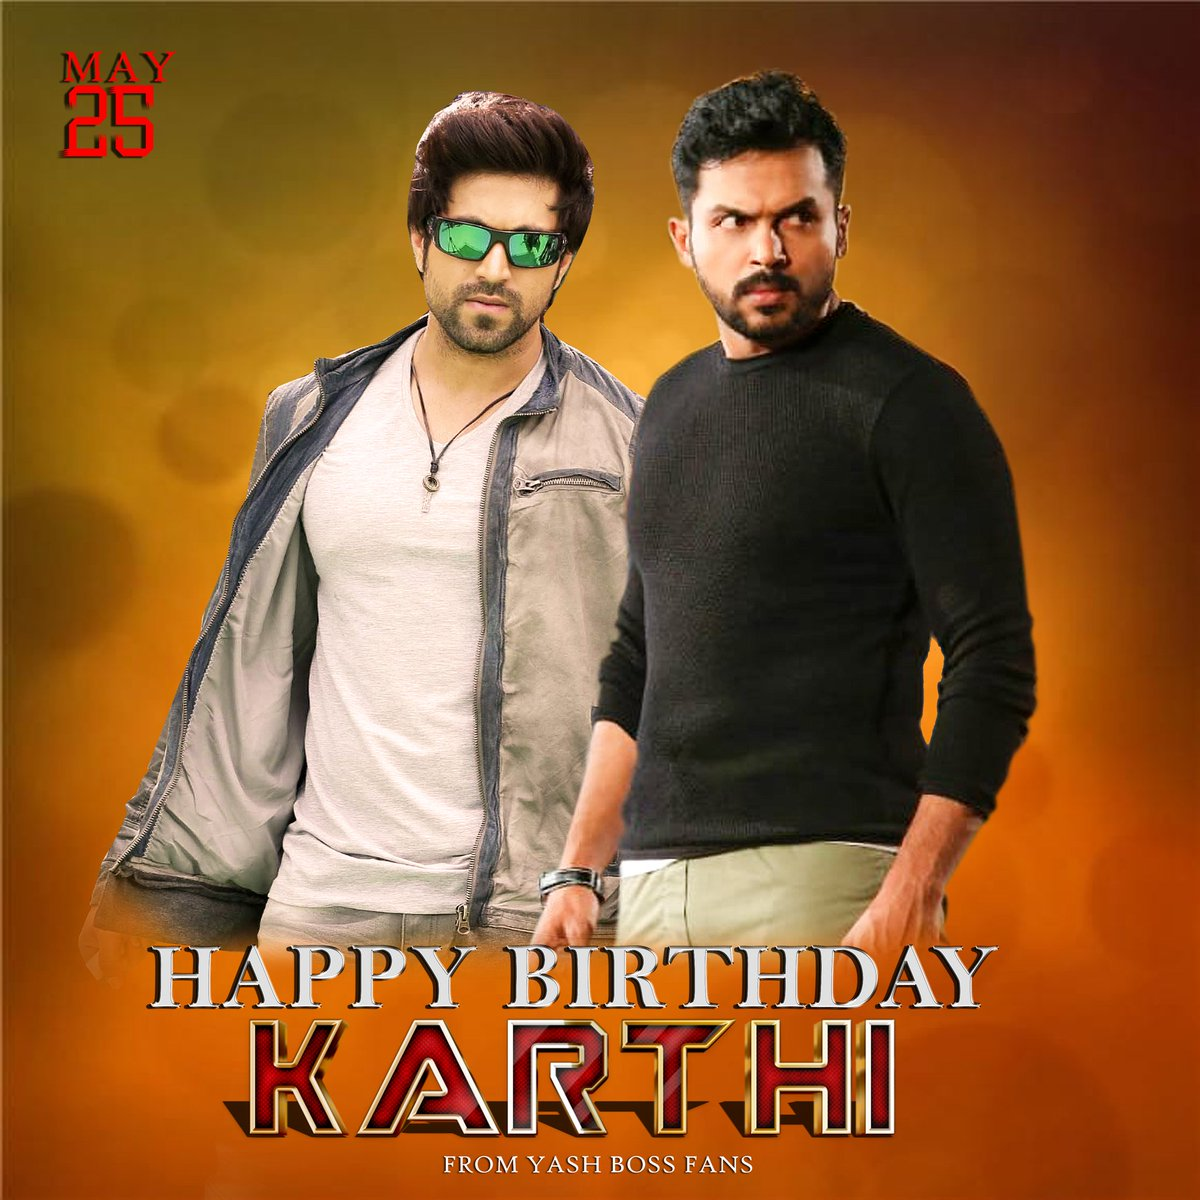 Happy Birthday @Karthi_Offl Behalf Of @TheNameIsYash BOSS Fans...!!  All The Best For Your Upcoming Projects  @Karthi_Offl Sir♥️  #HappyBirthdayKarthi #KGFChapter2 https://t.co/zxz6lW464S